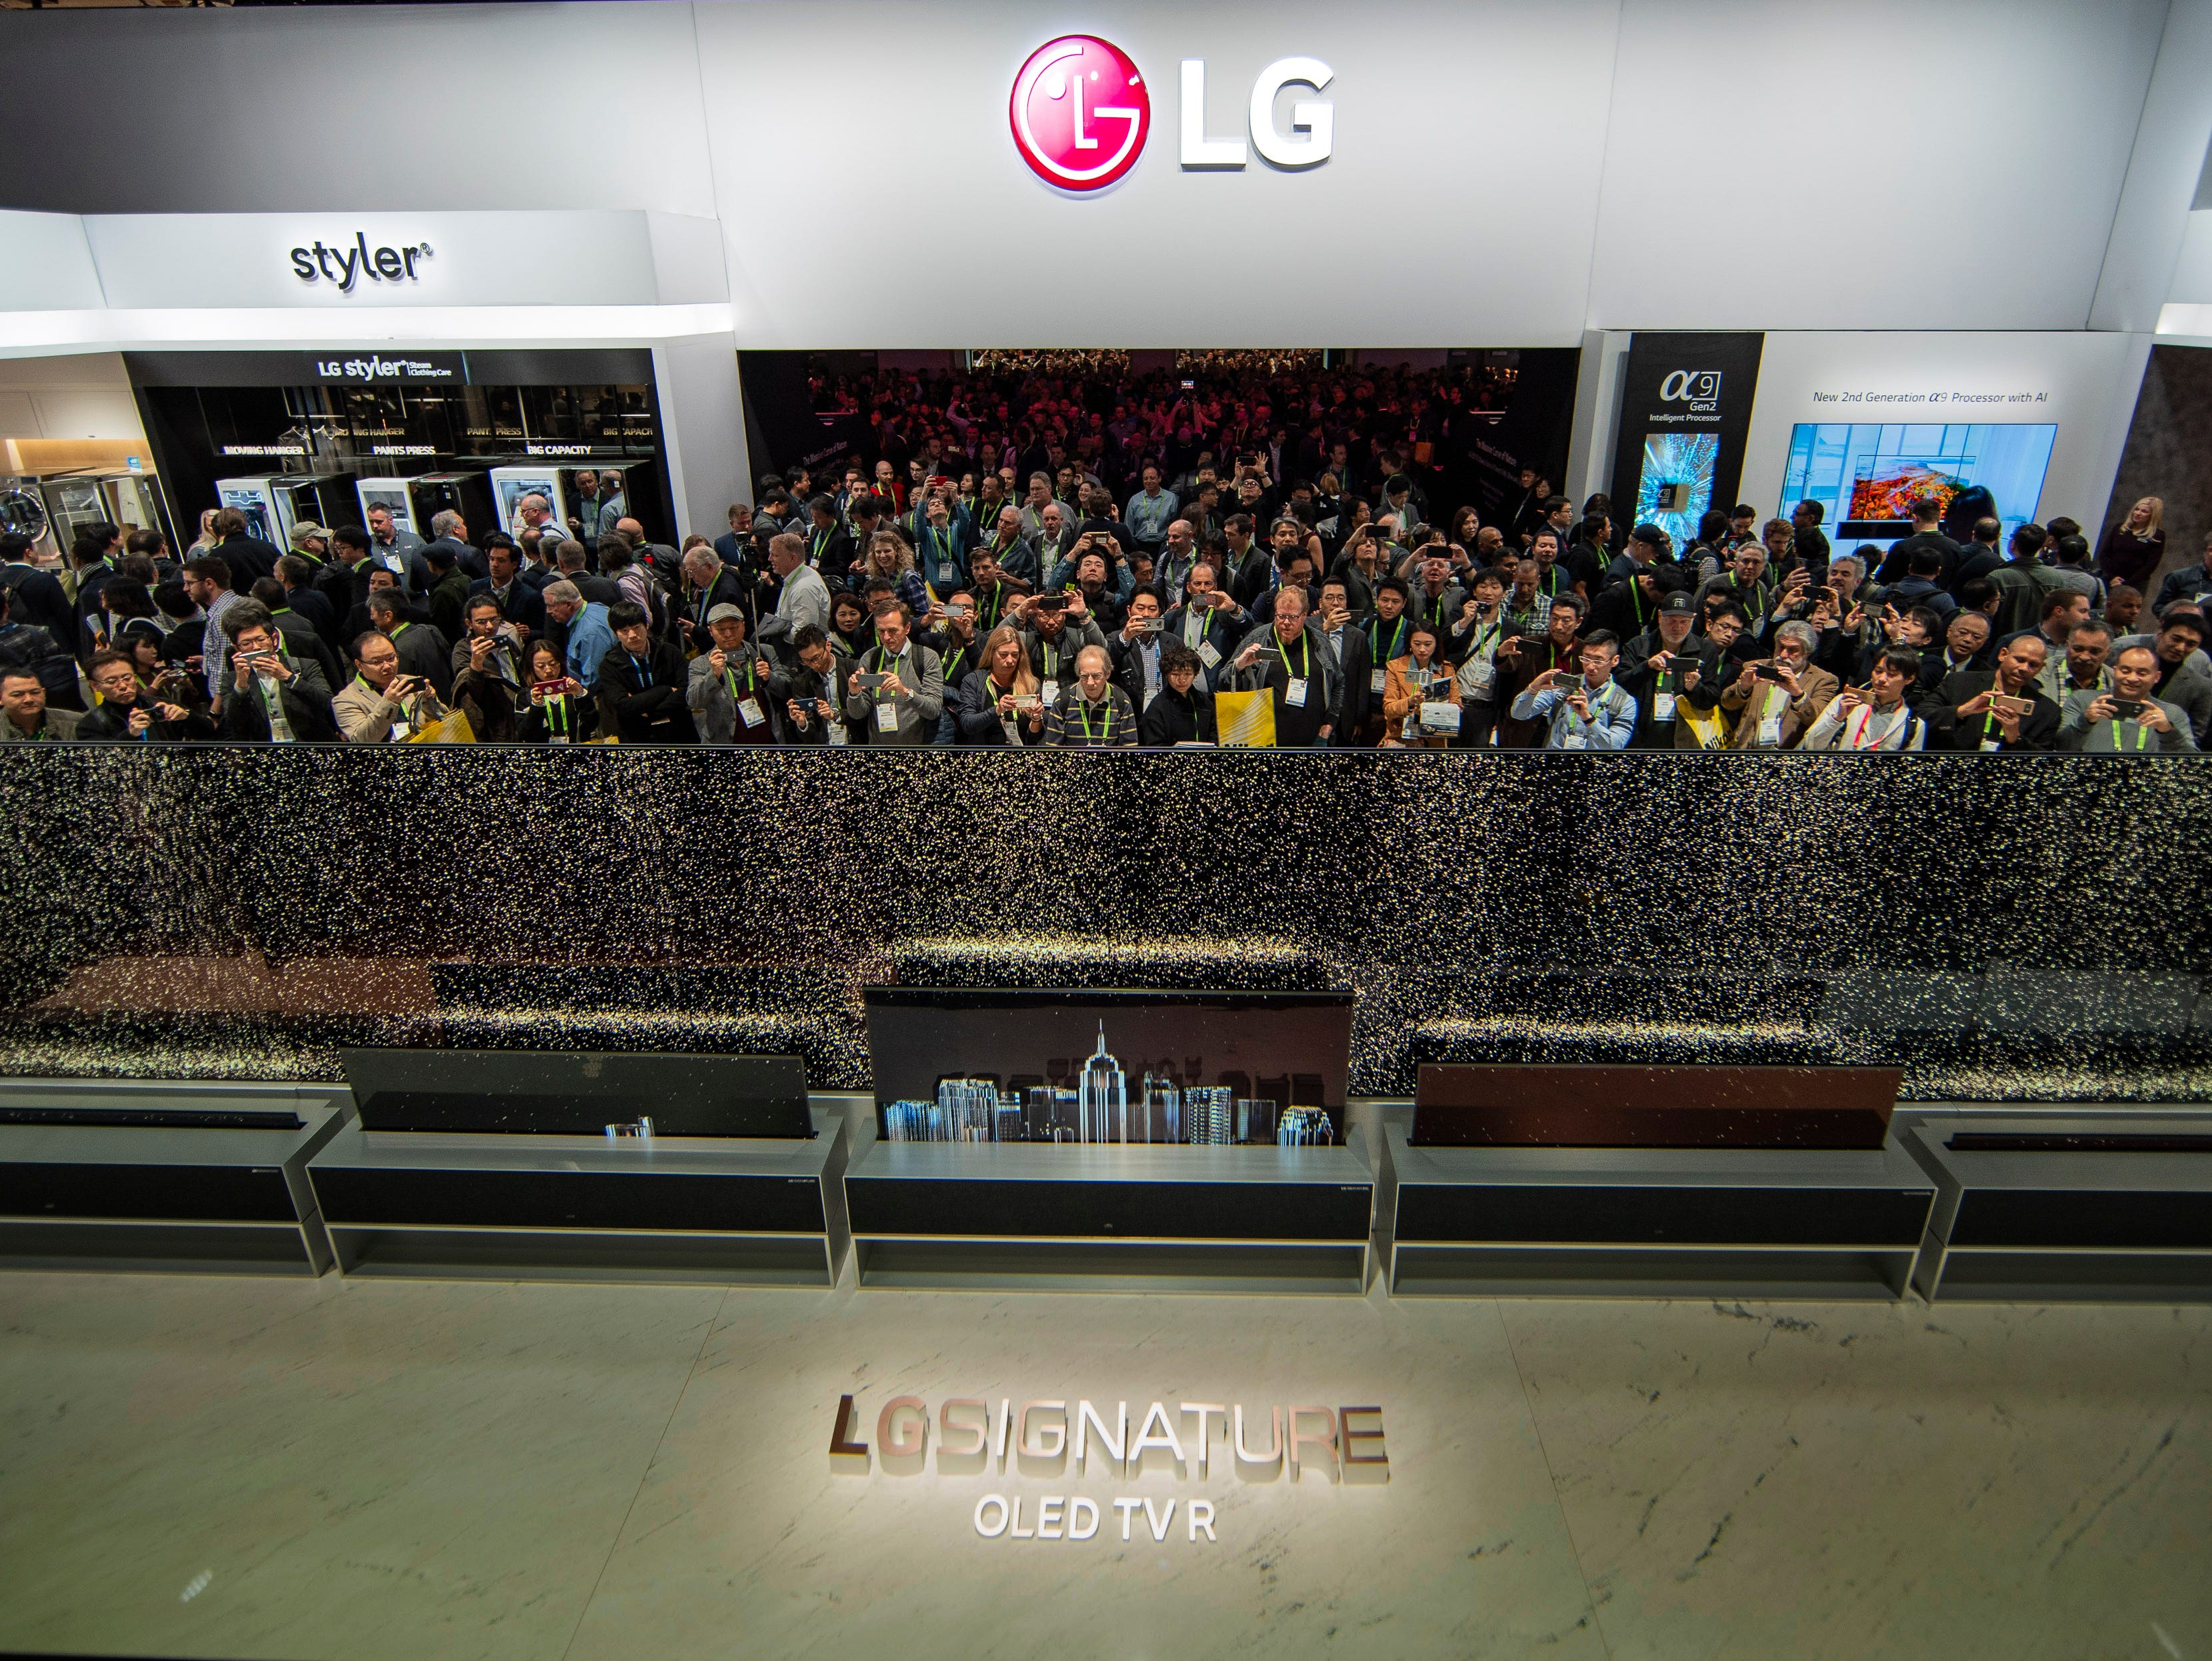 CES 2019 attendees get their first experience viewing the LG Signature OLED TV R, LG's rollable OLED TV at the LG Electronics booth Tuesday, Jan. 8, 2019, in Las Vegas.